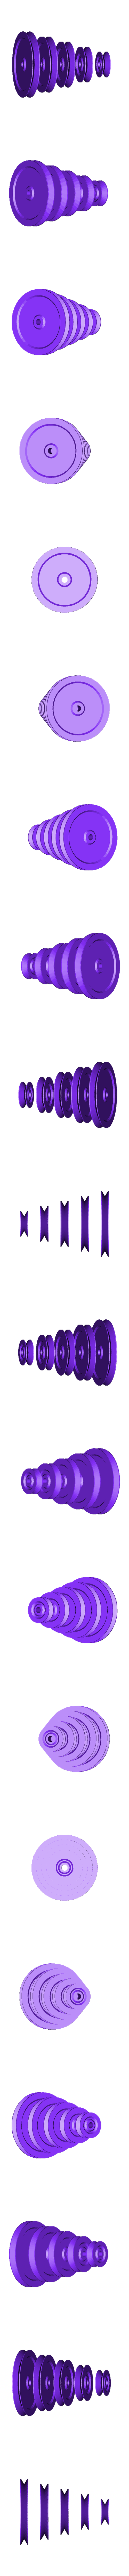 V-Pulleys.STL Download 3MF file Mini Metric V Pulley Set 3D print model • Object to 3D print, RachidSW